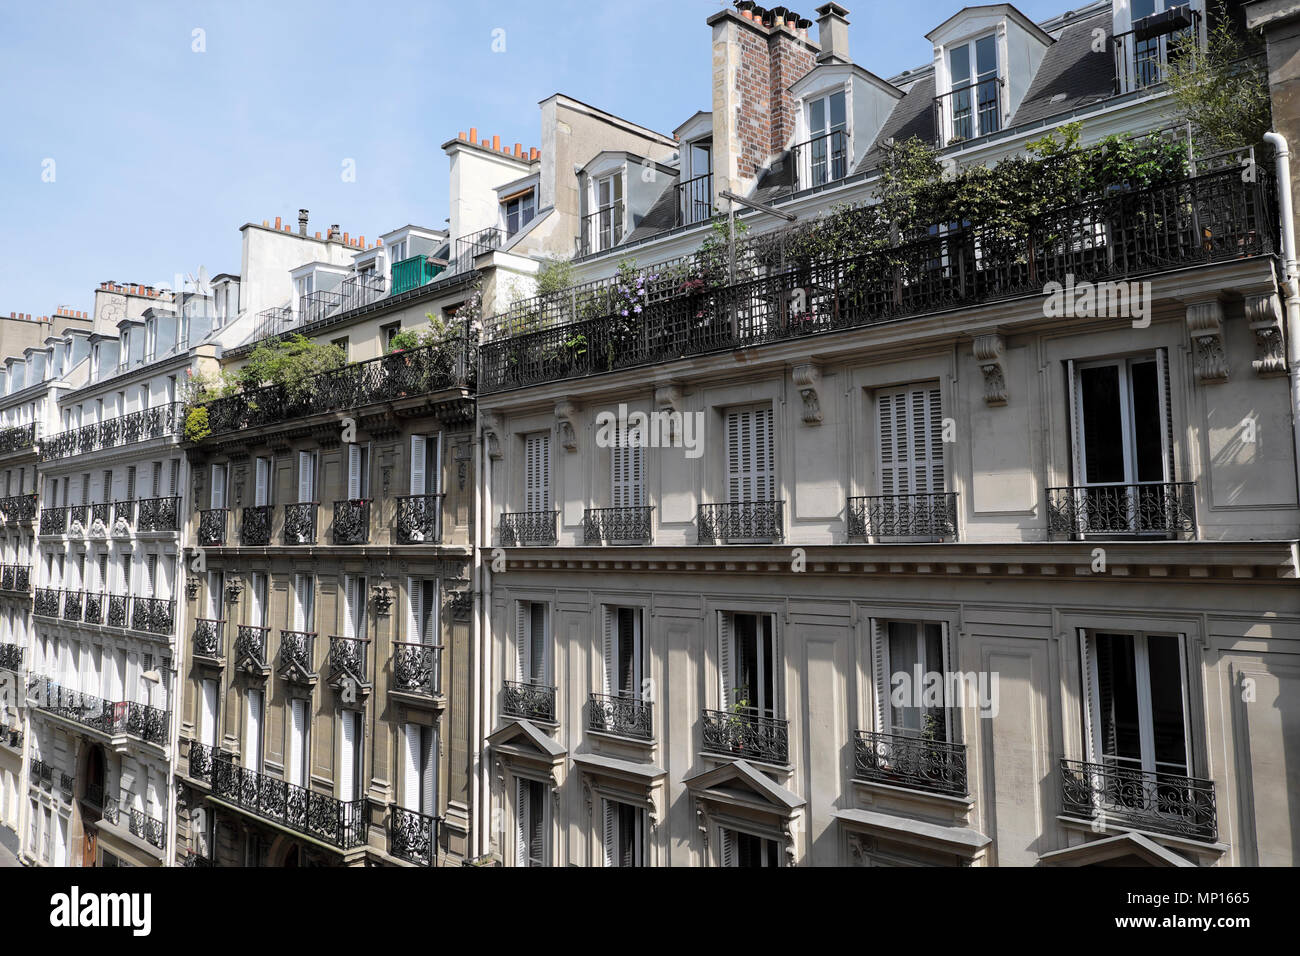 Exterior view of a row of apartment buildings with plants on balconies in the Rue Pierre Semard Paris 9th arrondissemnt France Europe EU  KATHY DEWITT - Stock Image